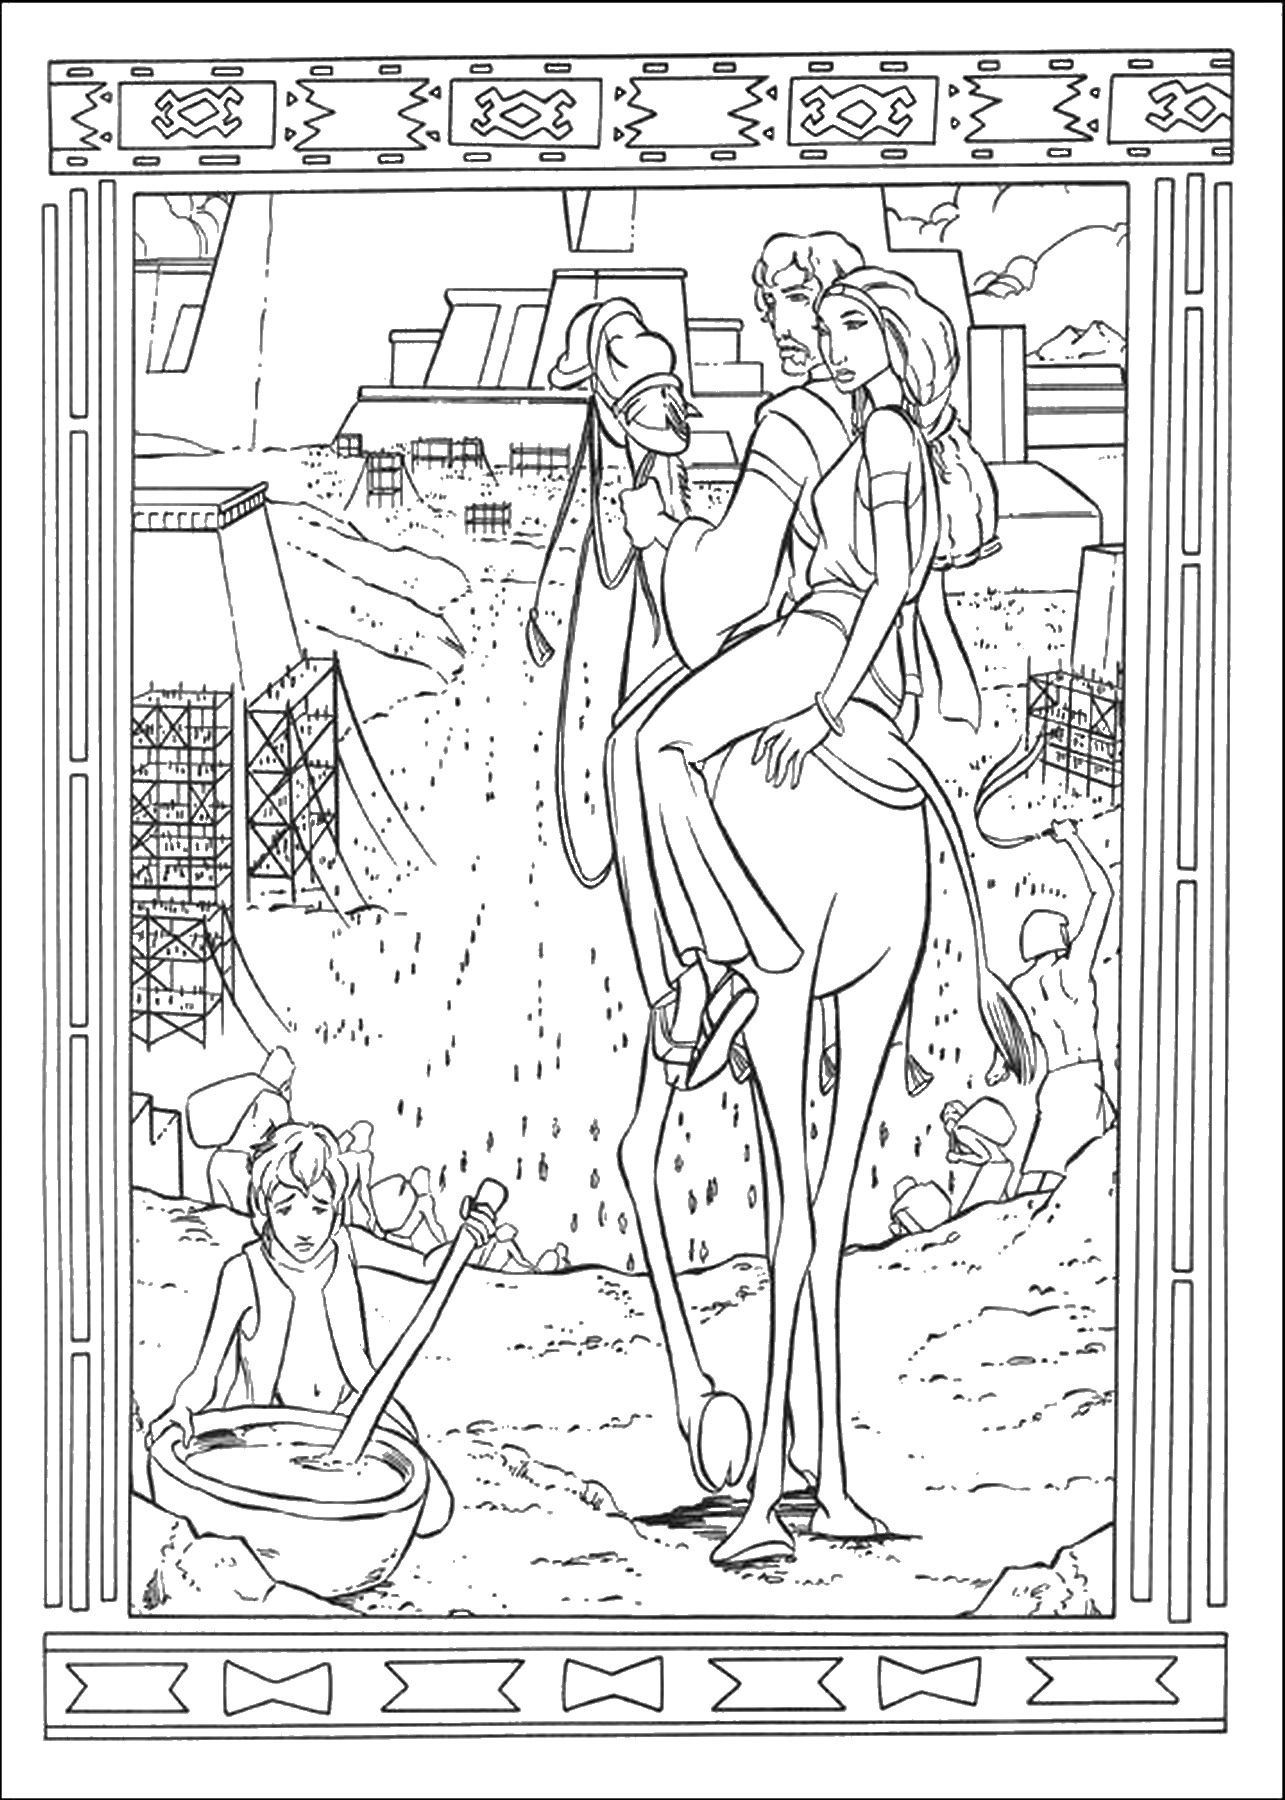 Prince of egypt coloring pictures - a-k-b.info